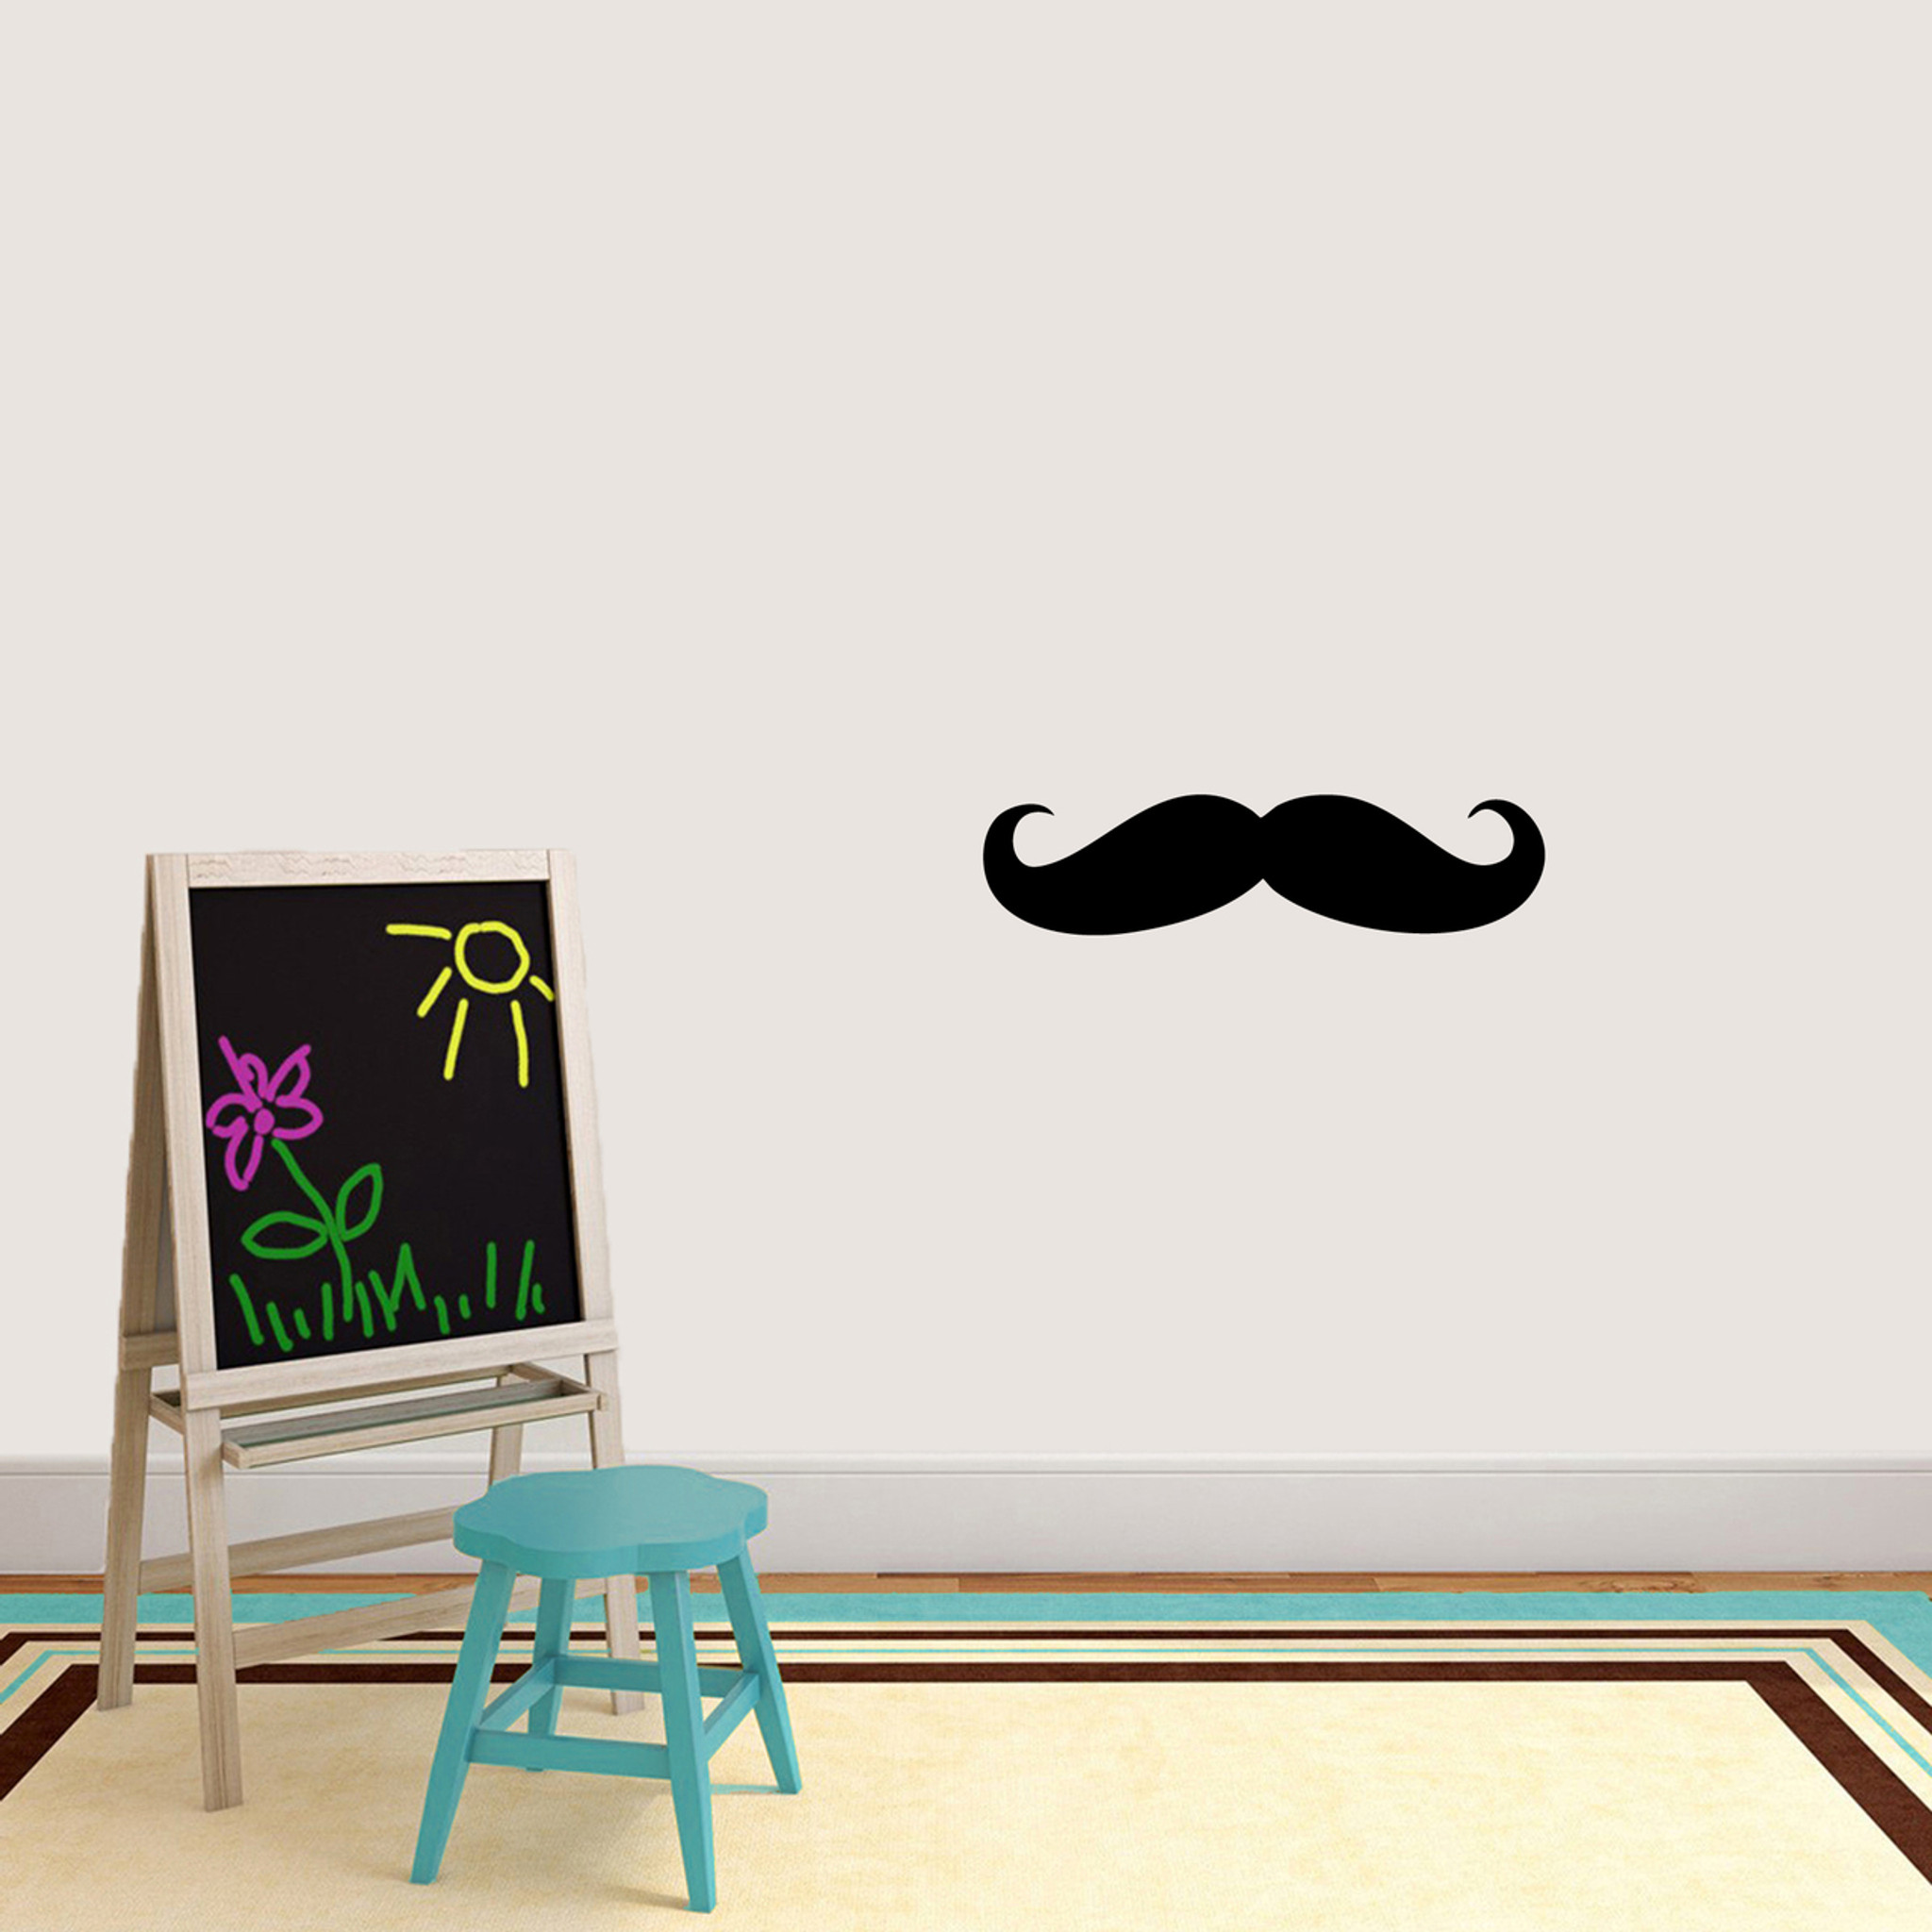 Mustache Wall Decals 24  wide x 6  tall S≤ Image  sc 1 st  Sweetums Signatures & Mustache Wall Decals Home Décor Wall Decals